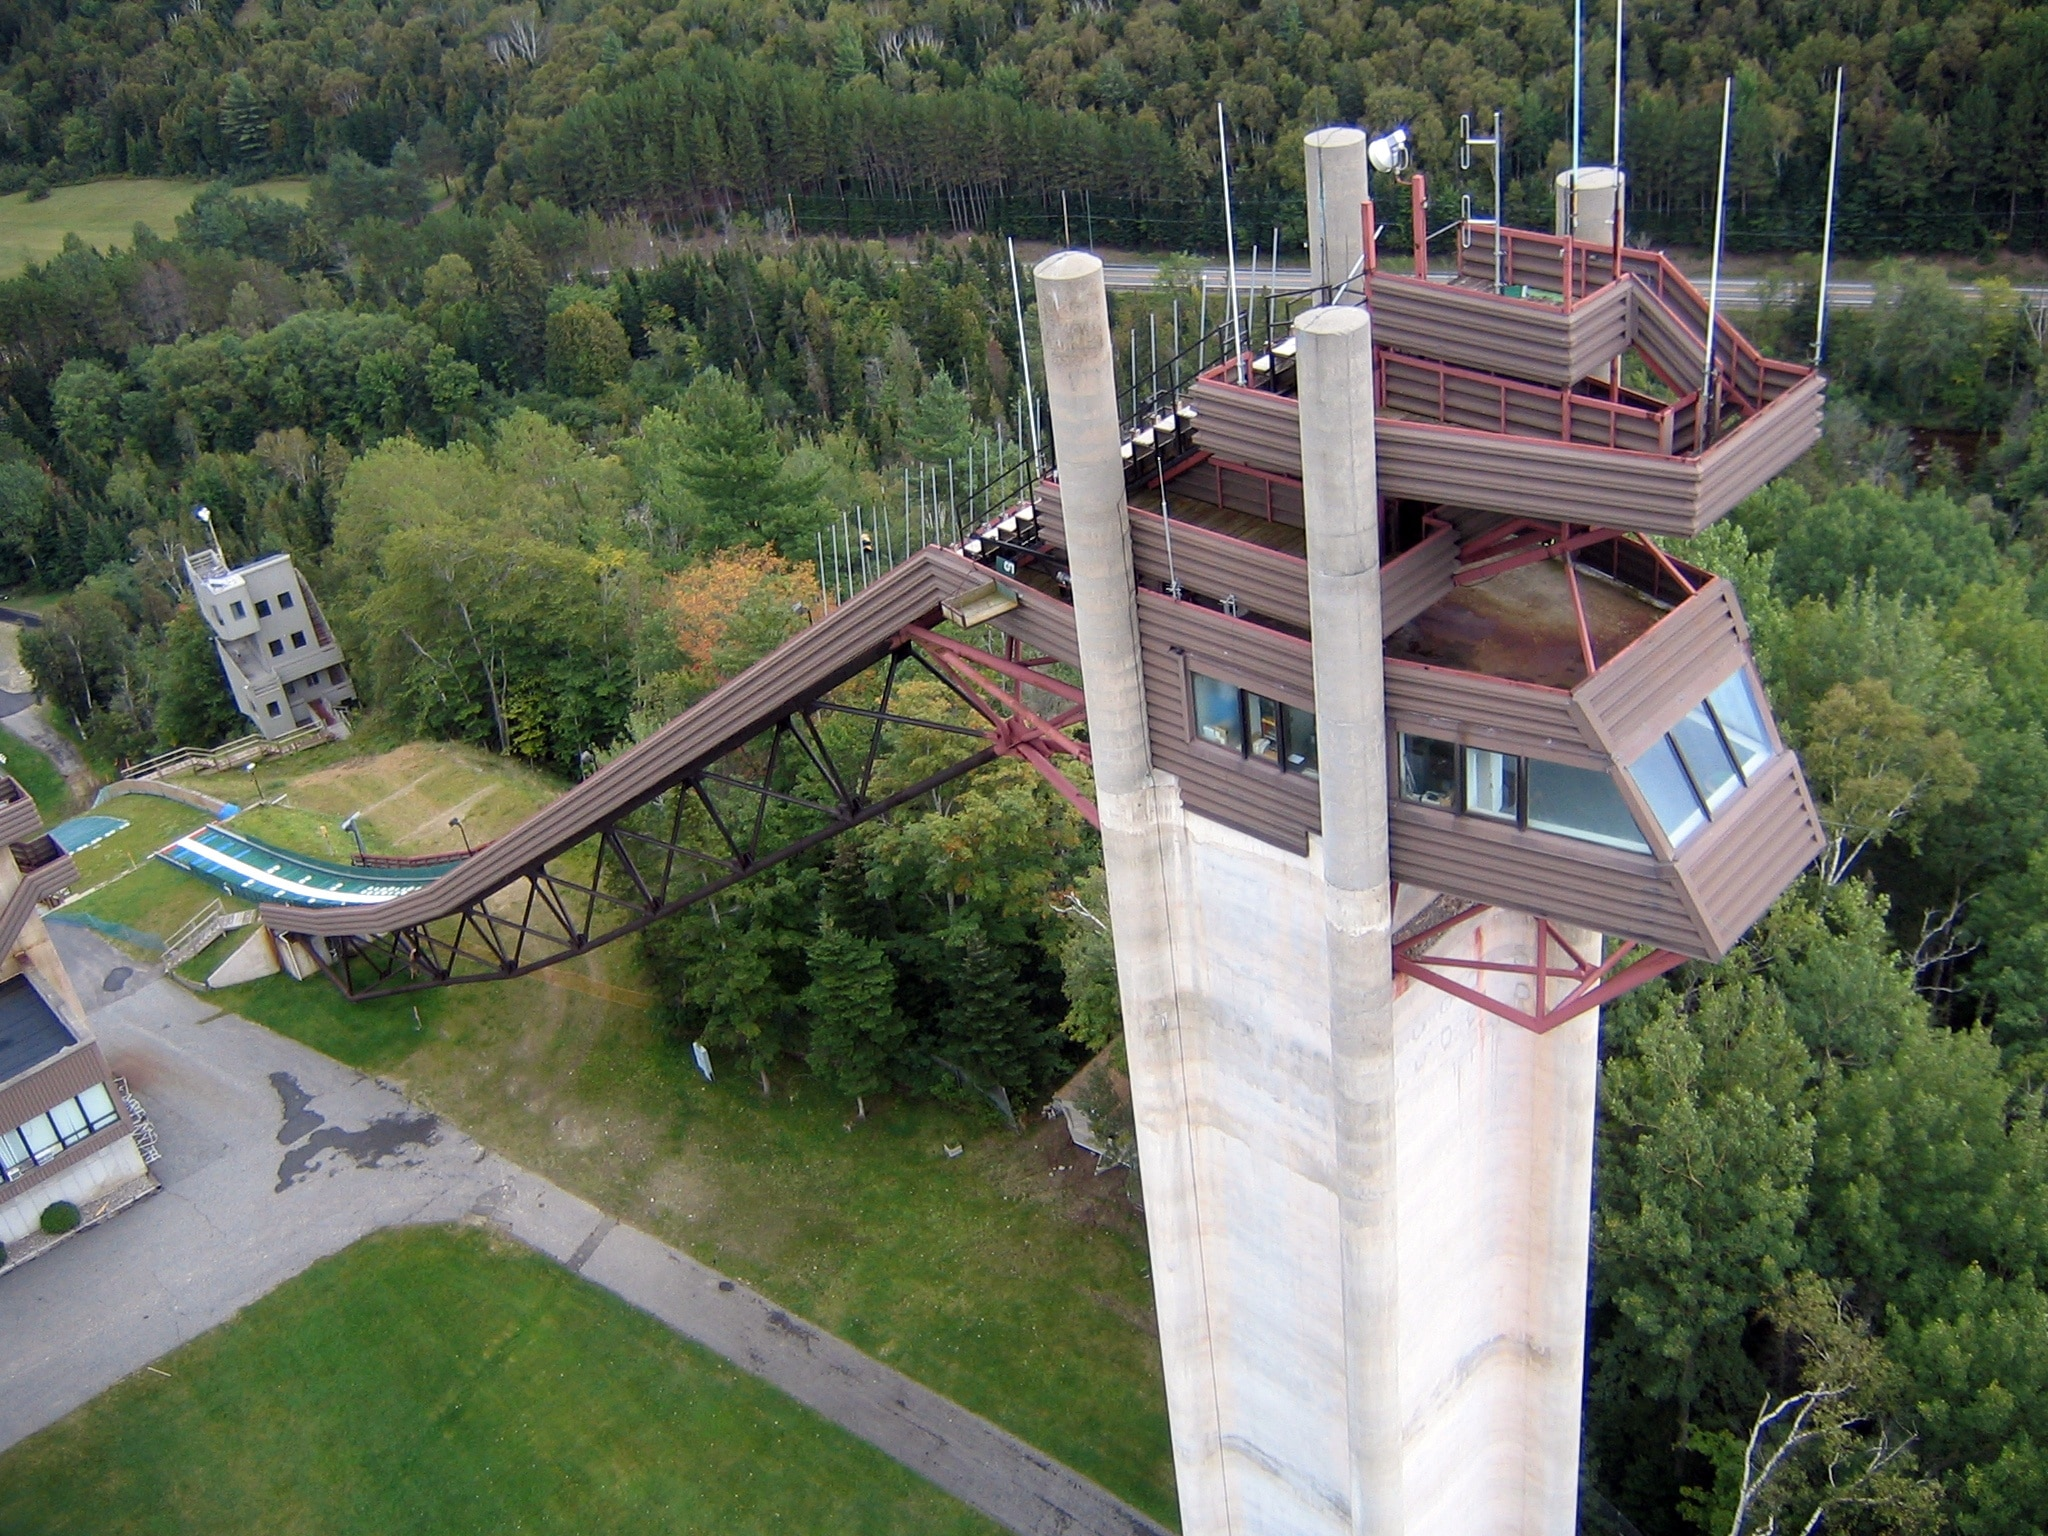 Olympic Jumping Complex, Lake Placid, New York, United States of America